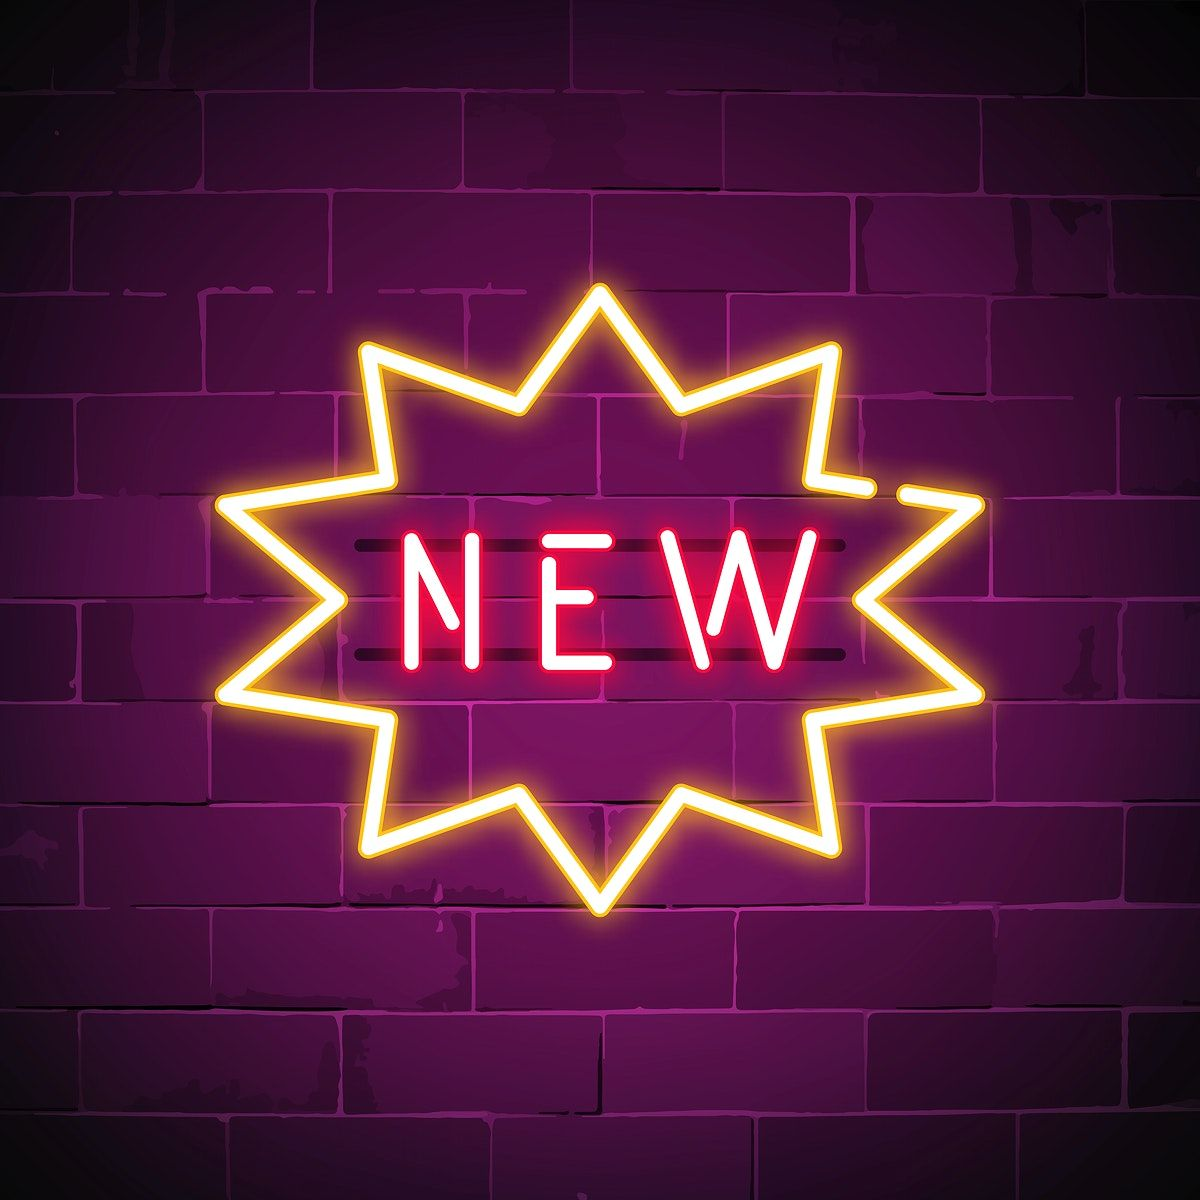 New in shop neon sign vector free image by